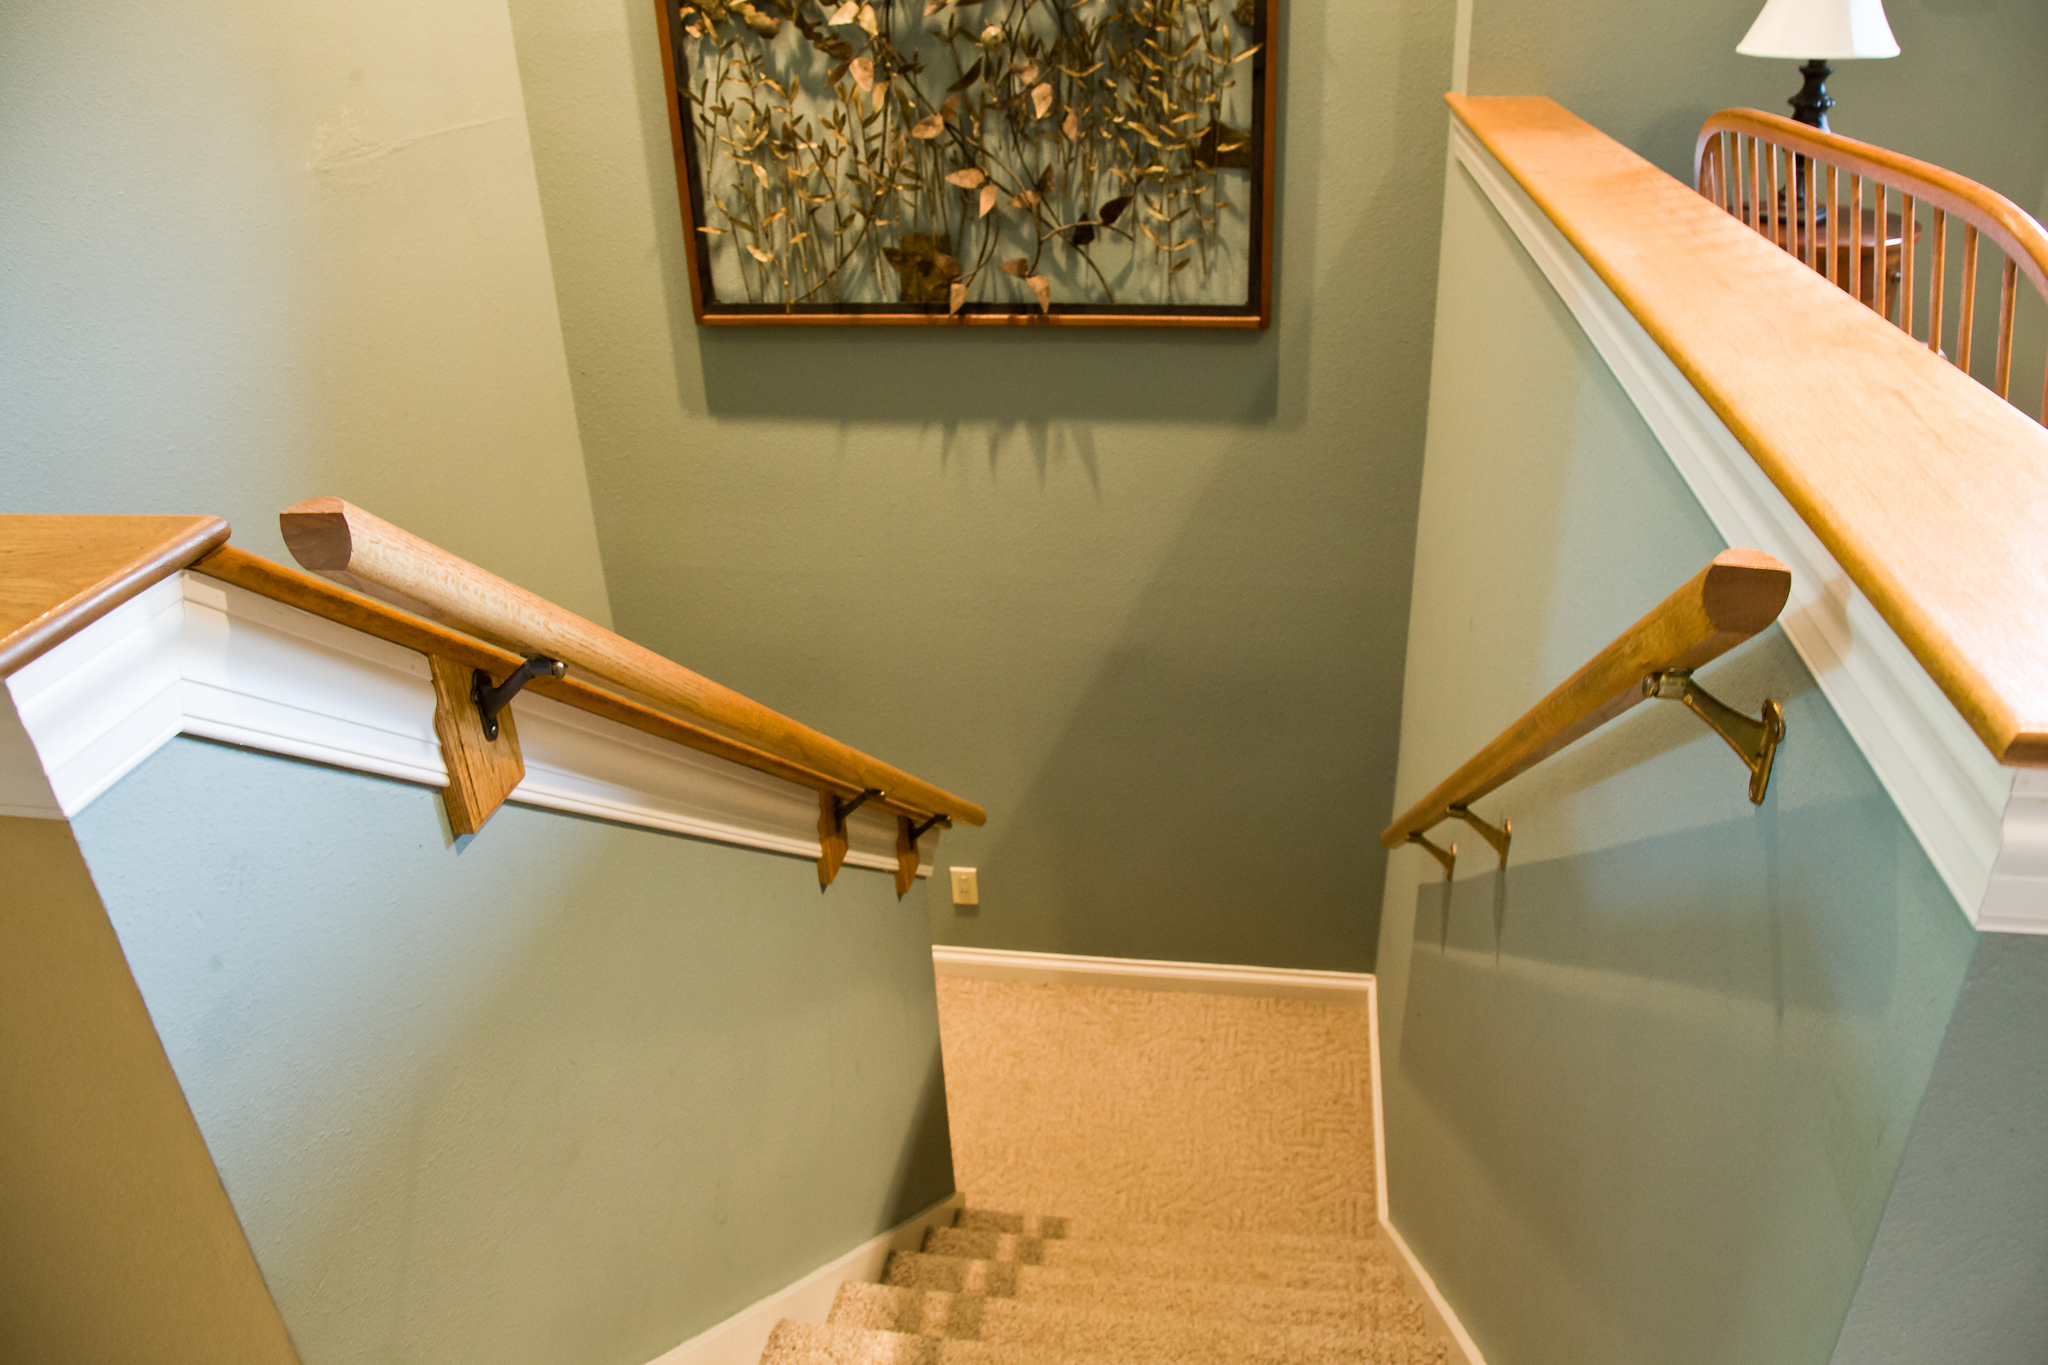 Double Stair Railing | Home Safety Elderly | Smart Accessible Living